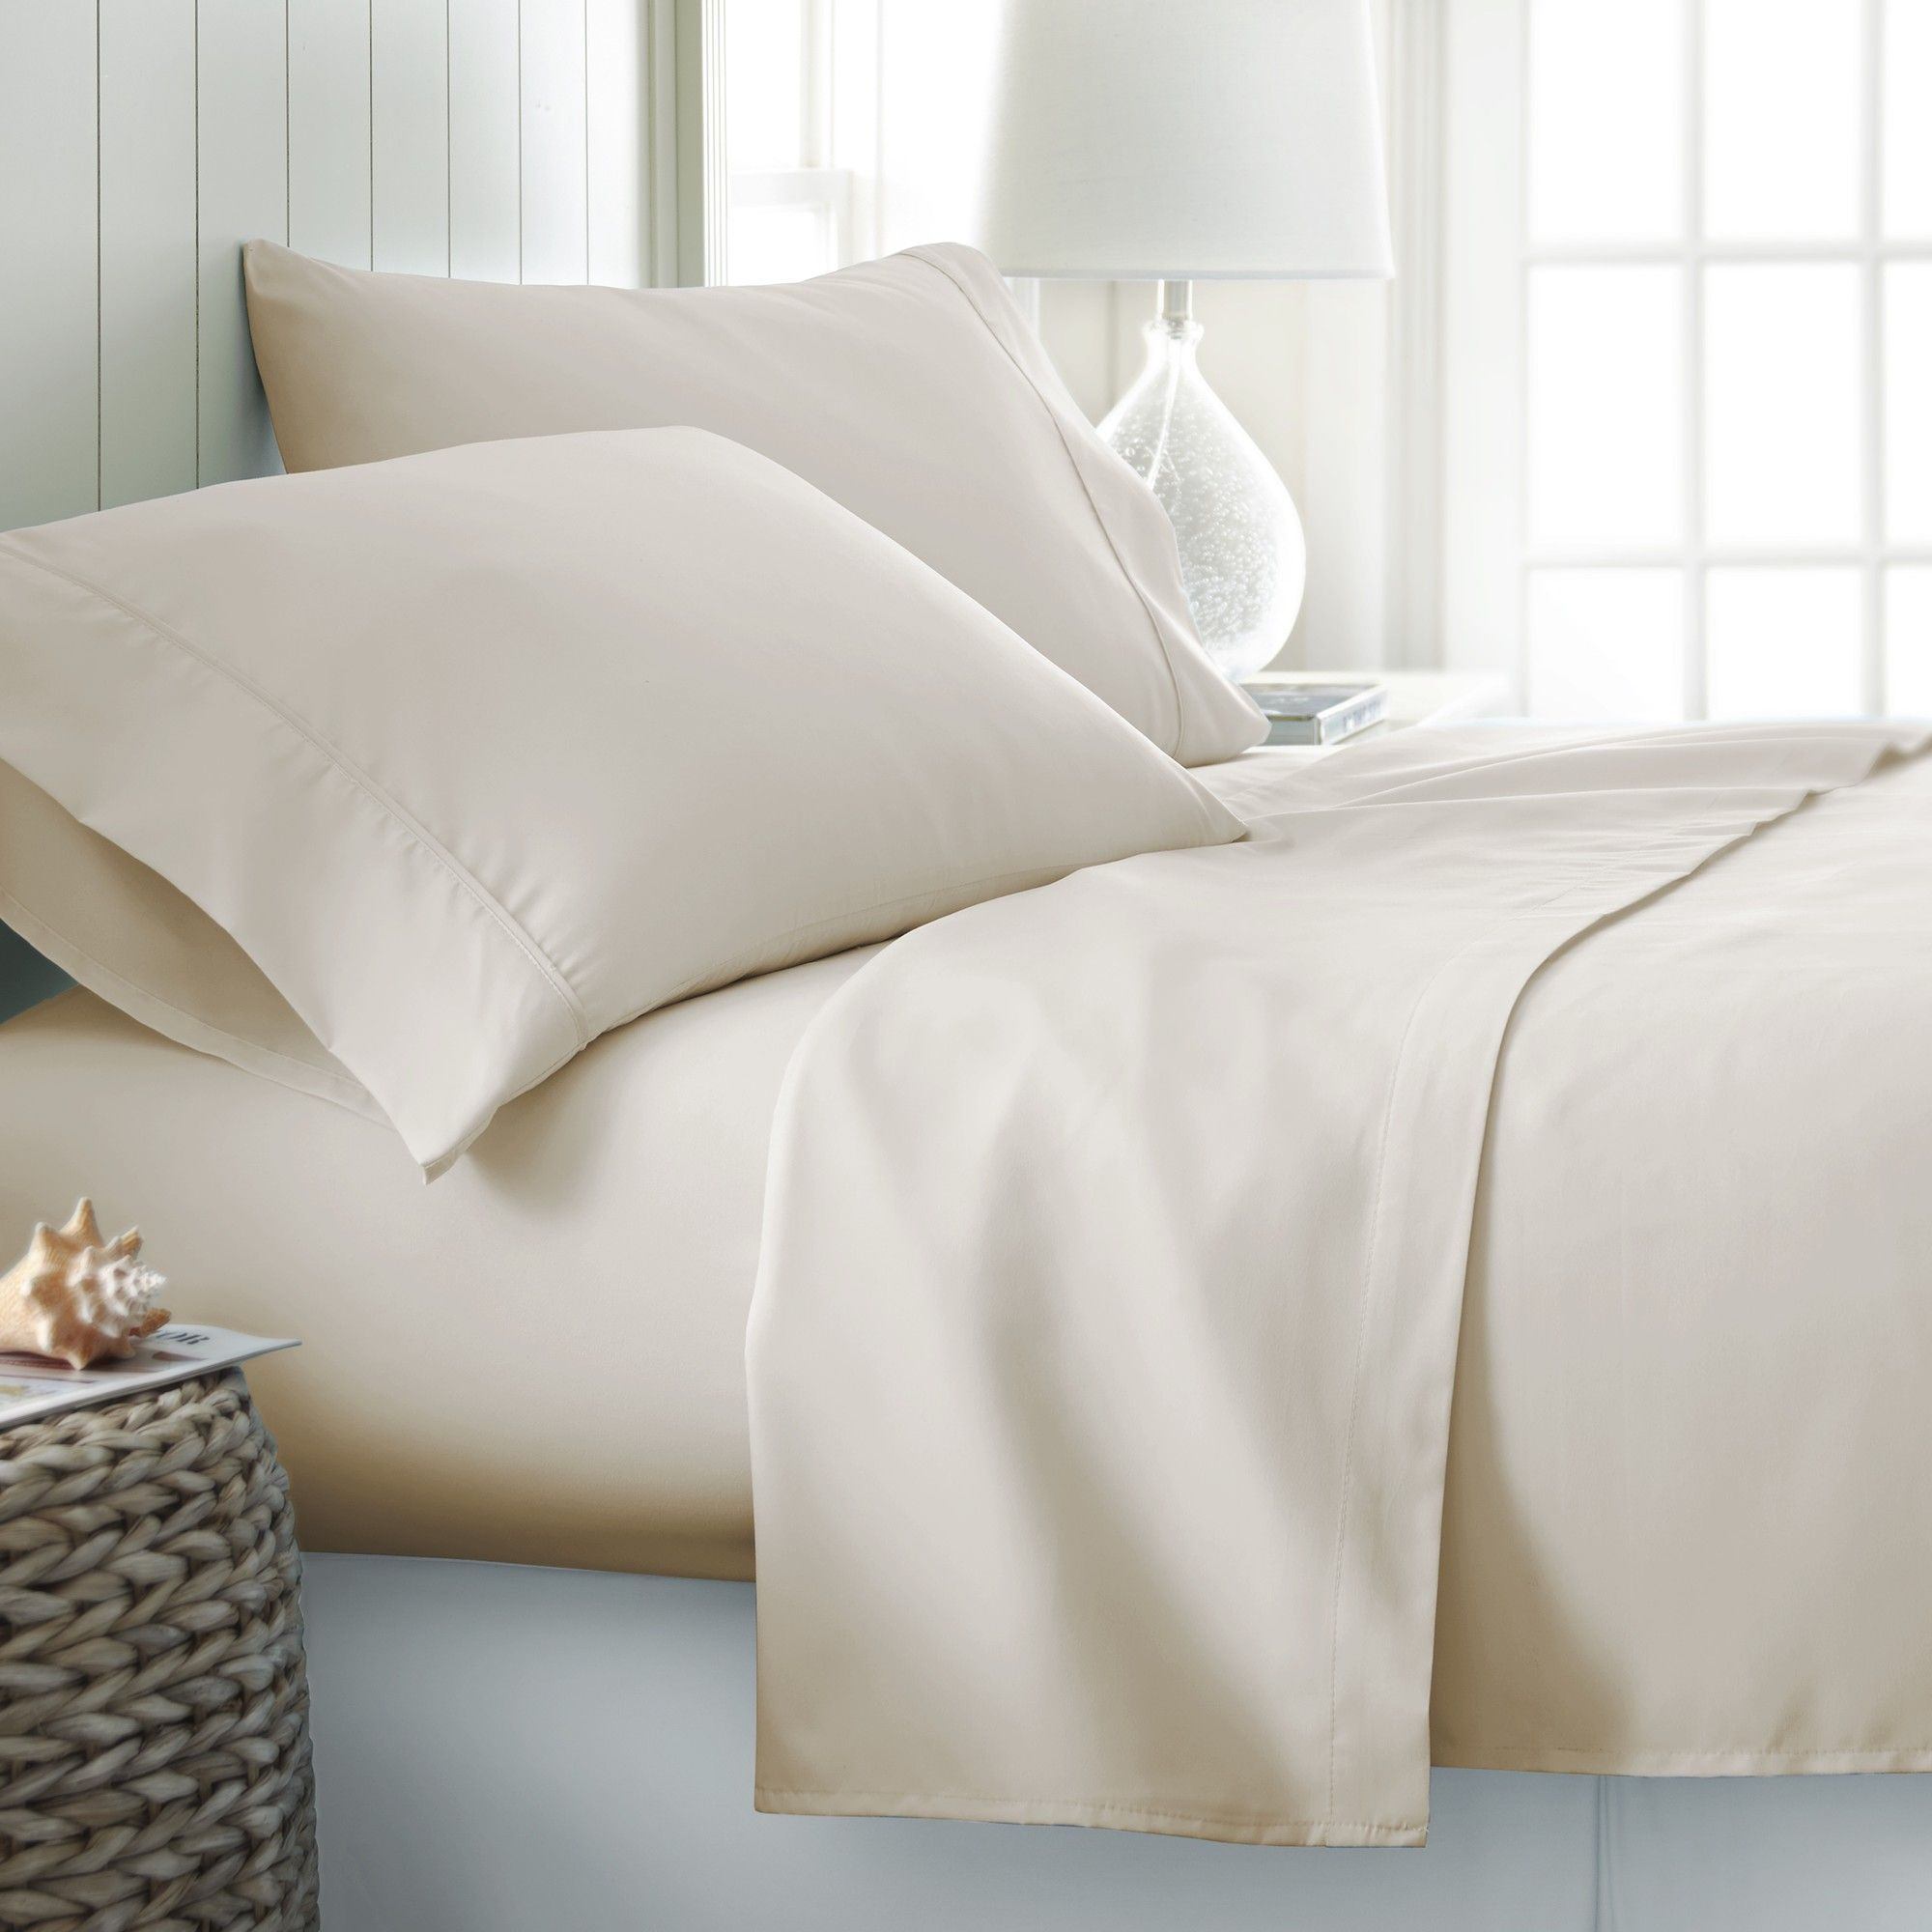 Simply Soft Premium Luxury Sheet Set Luxury Sheet Sets Luxury